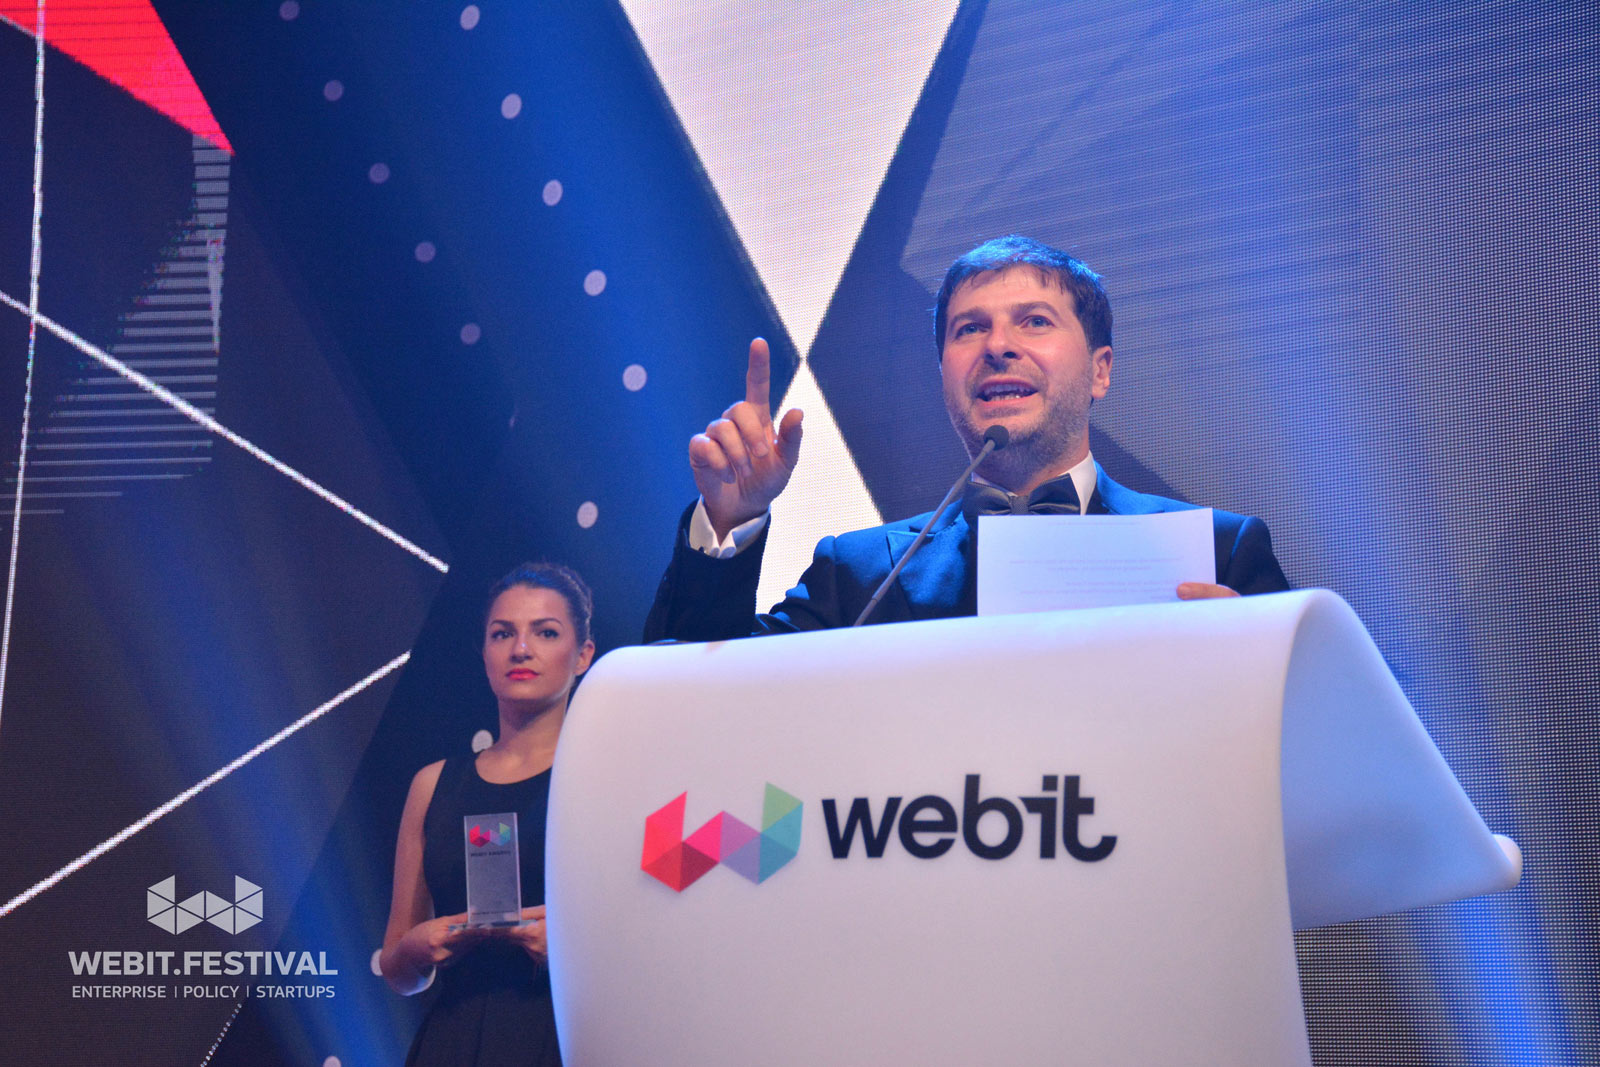 Plamen Russev presenting the award for Best Smart City Mobility Solution during the Webit Awards official ceremony and dinner